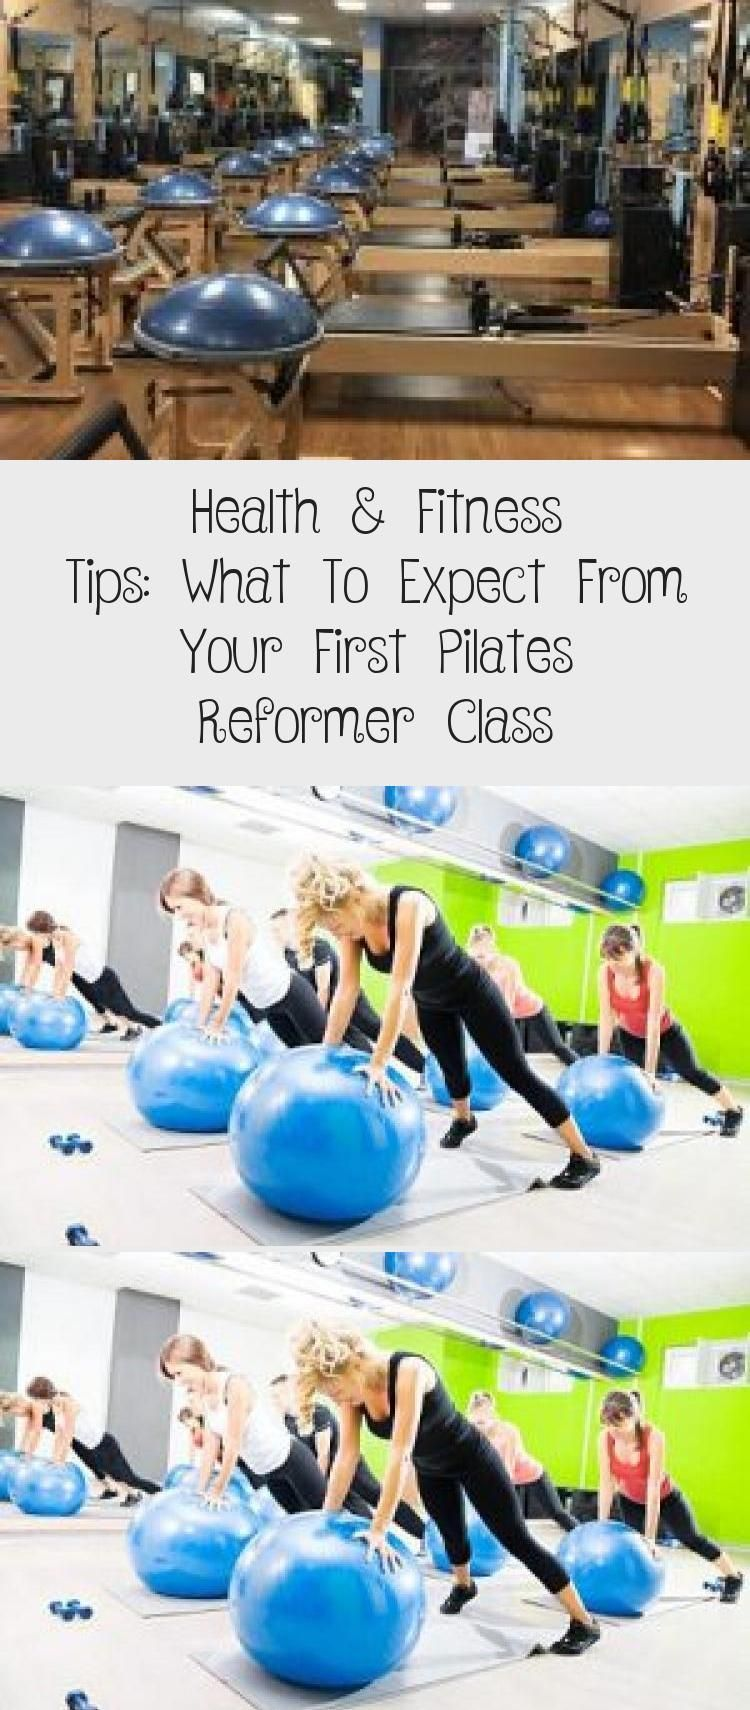 Health & Fitness Tips: What To Expect From Your First Pilates Reformer Class - T... -  Health & Fitn...